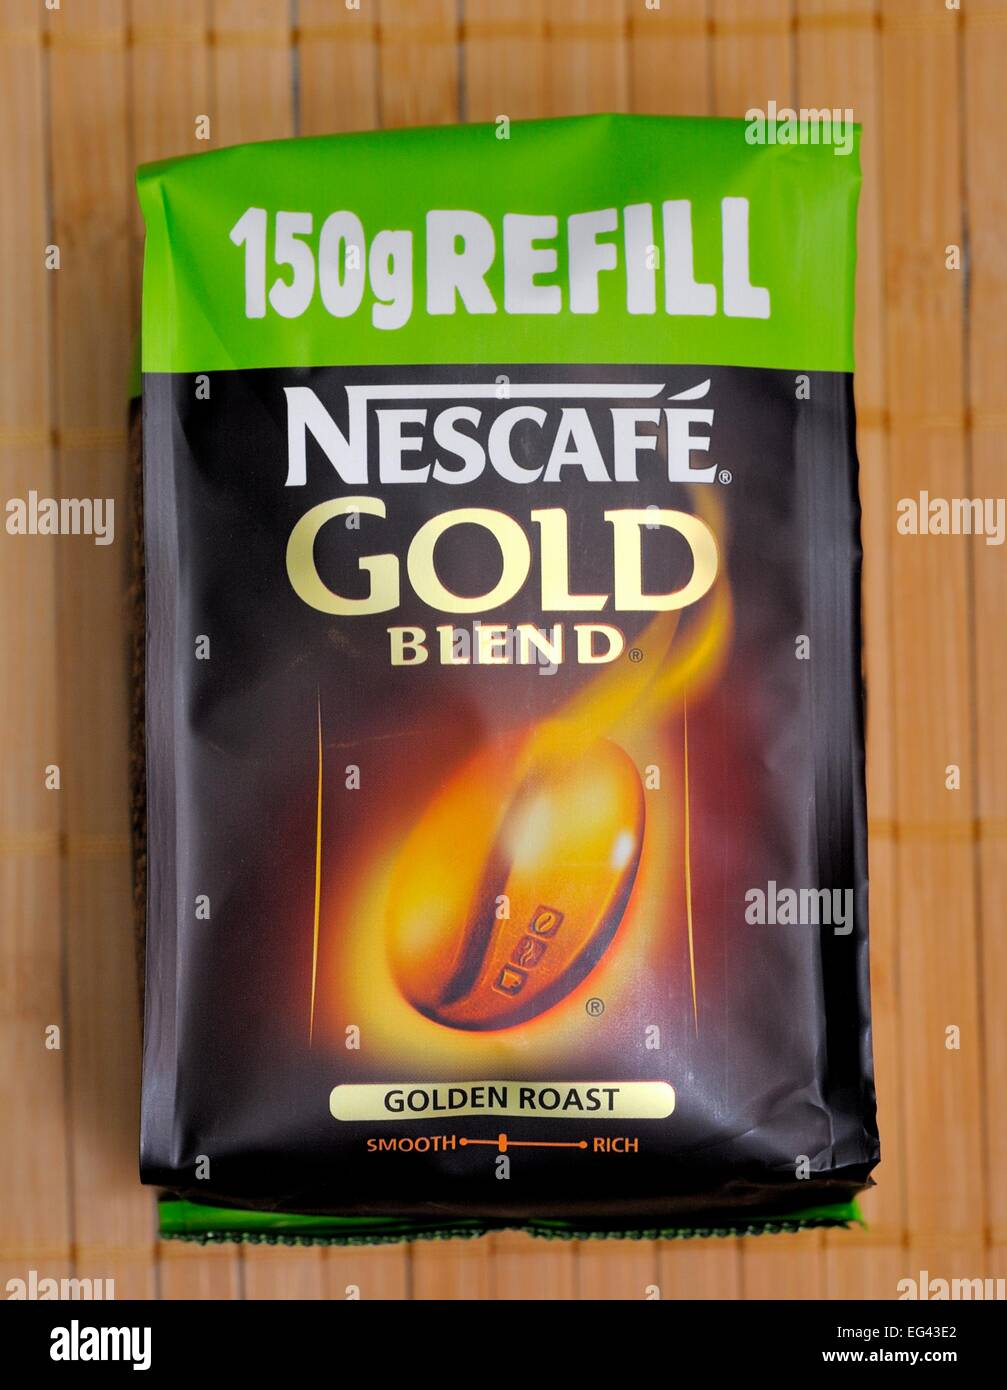 Nescafe 150g refill retail pack - Stock Image